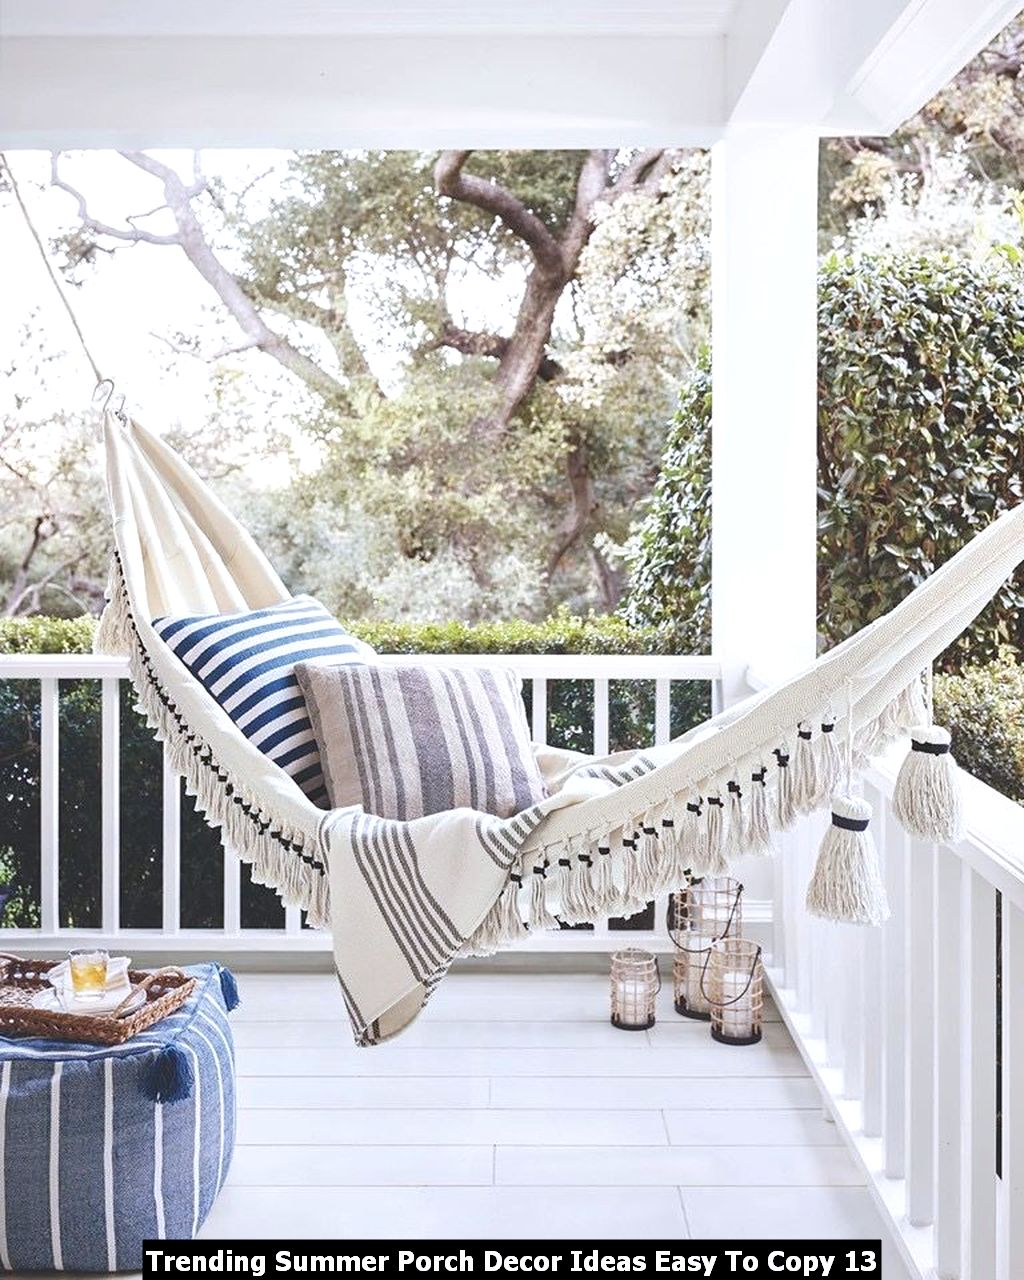 Trending Summer Porch Decor Ideas Easy To Copy 13